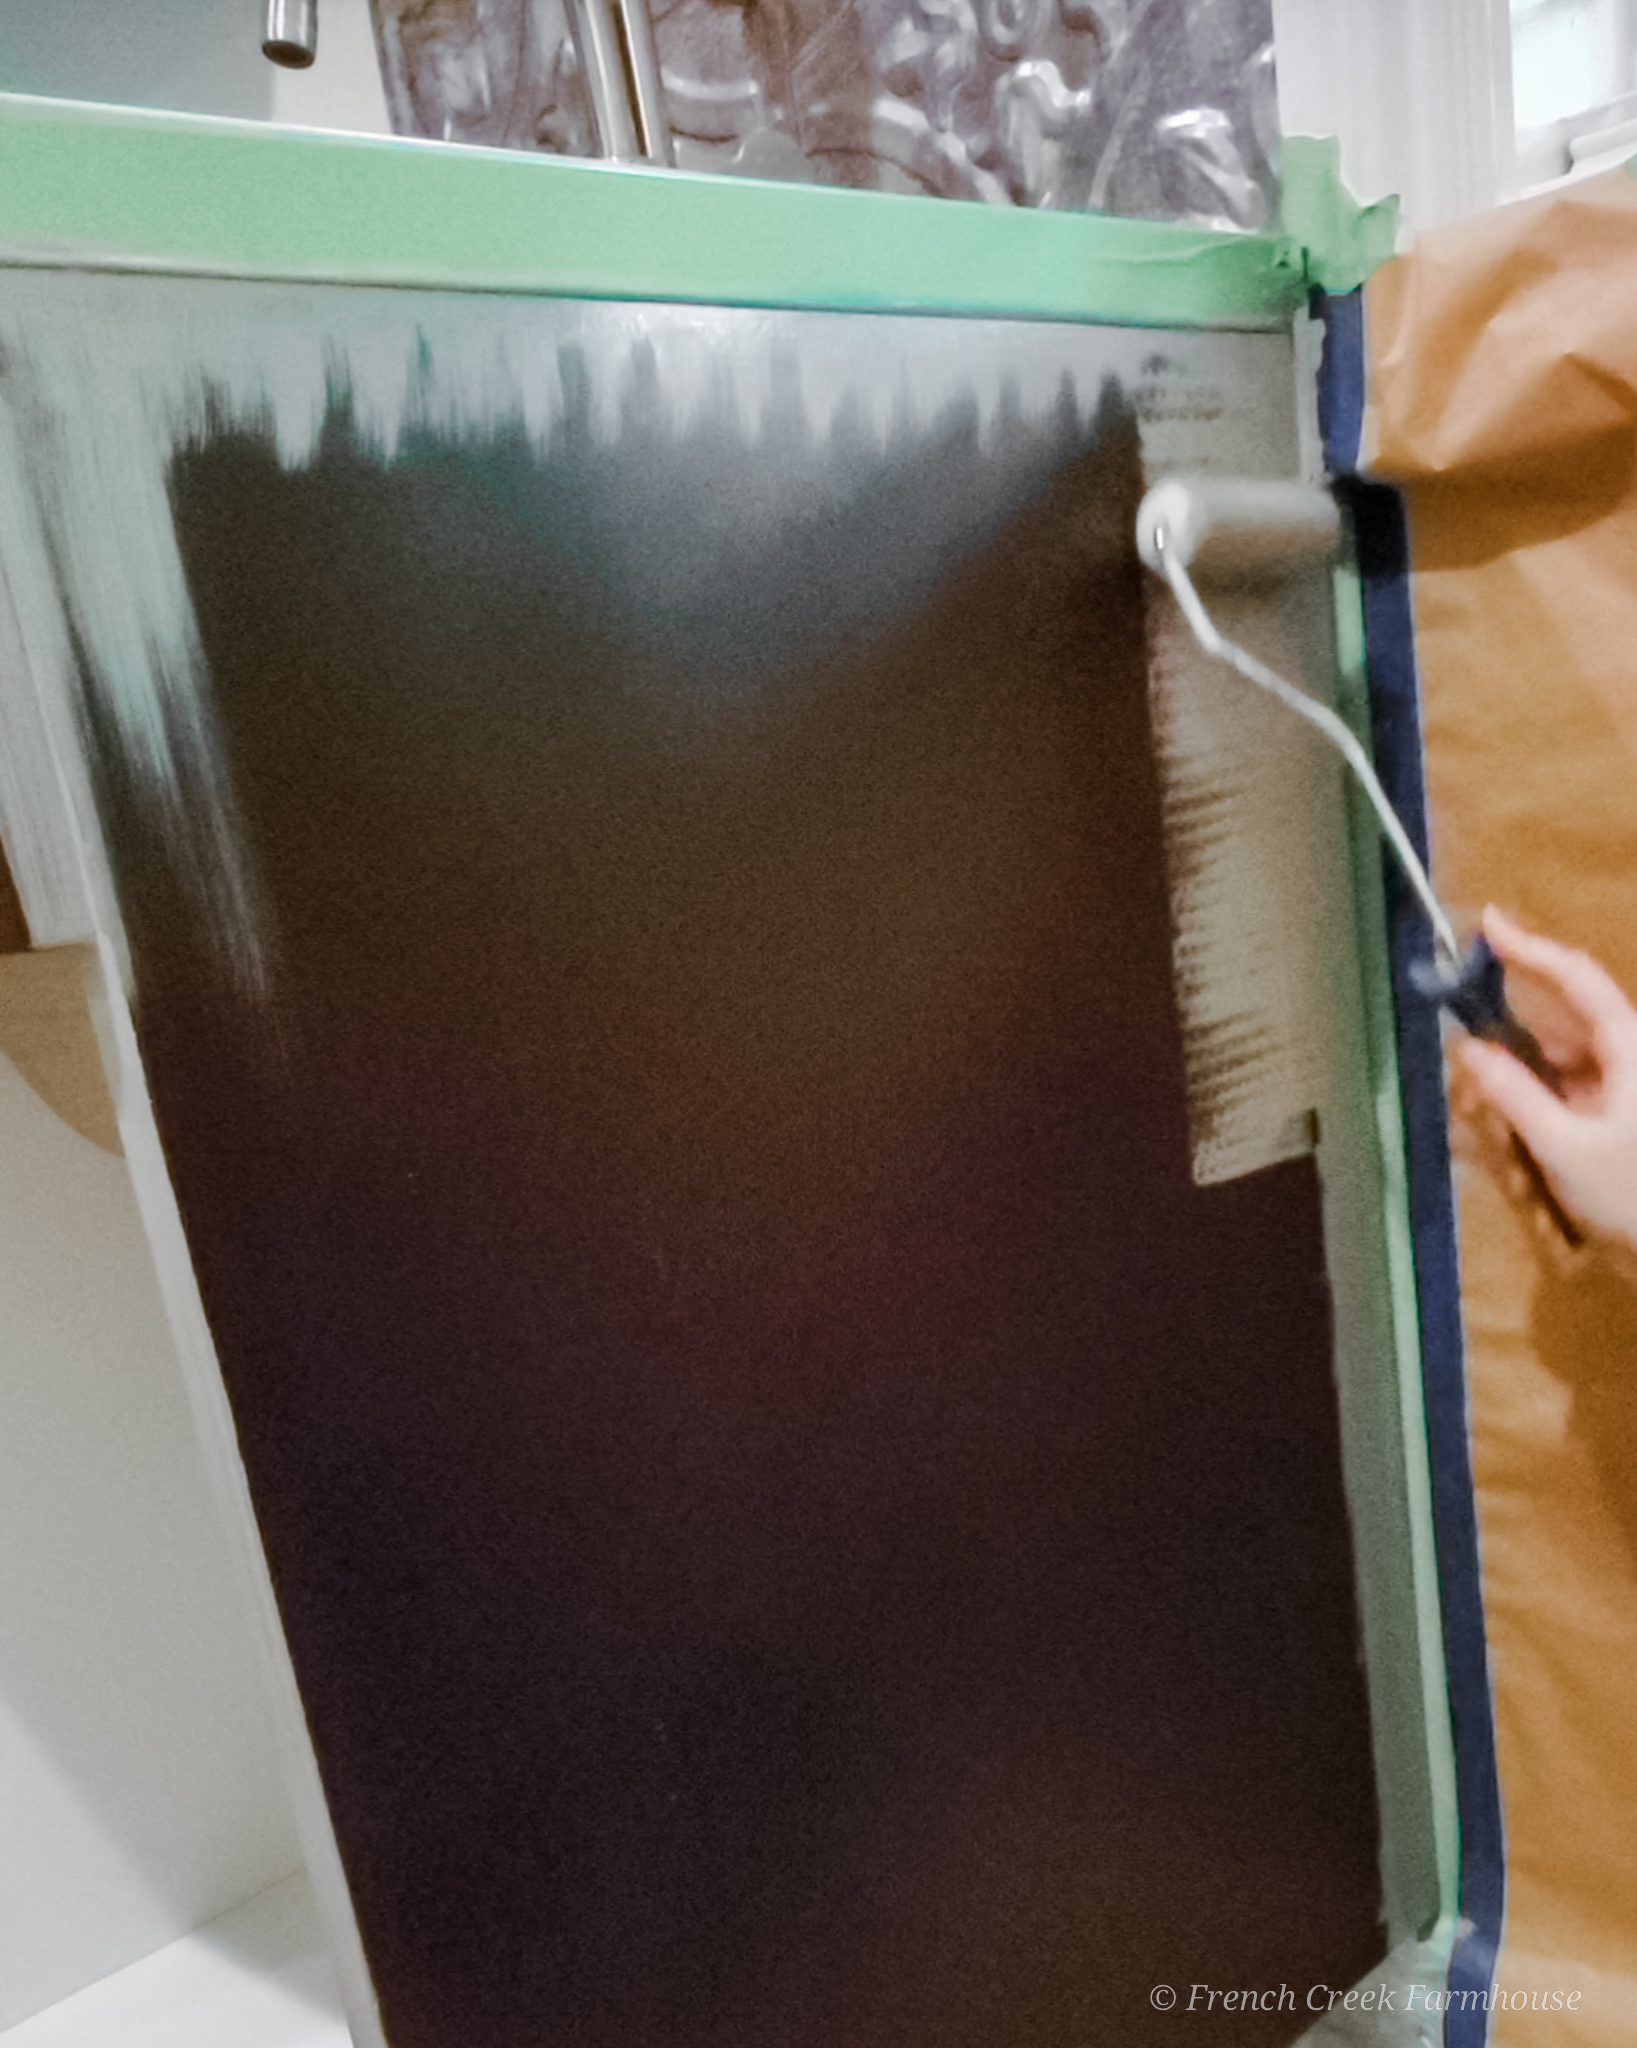 Painting the utility sink cabinet